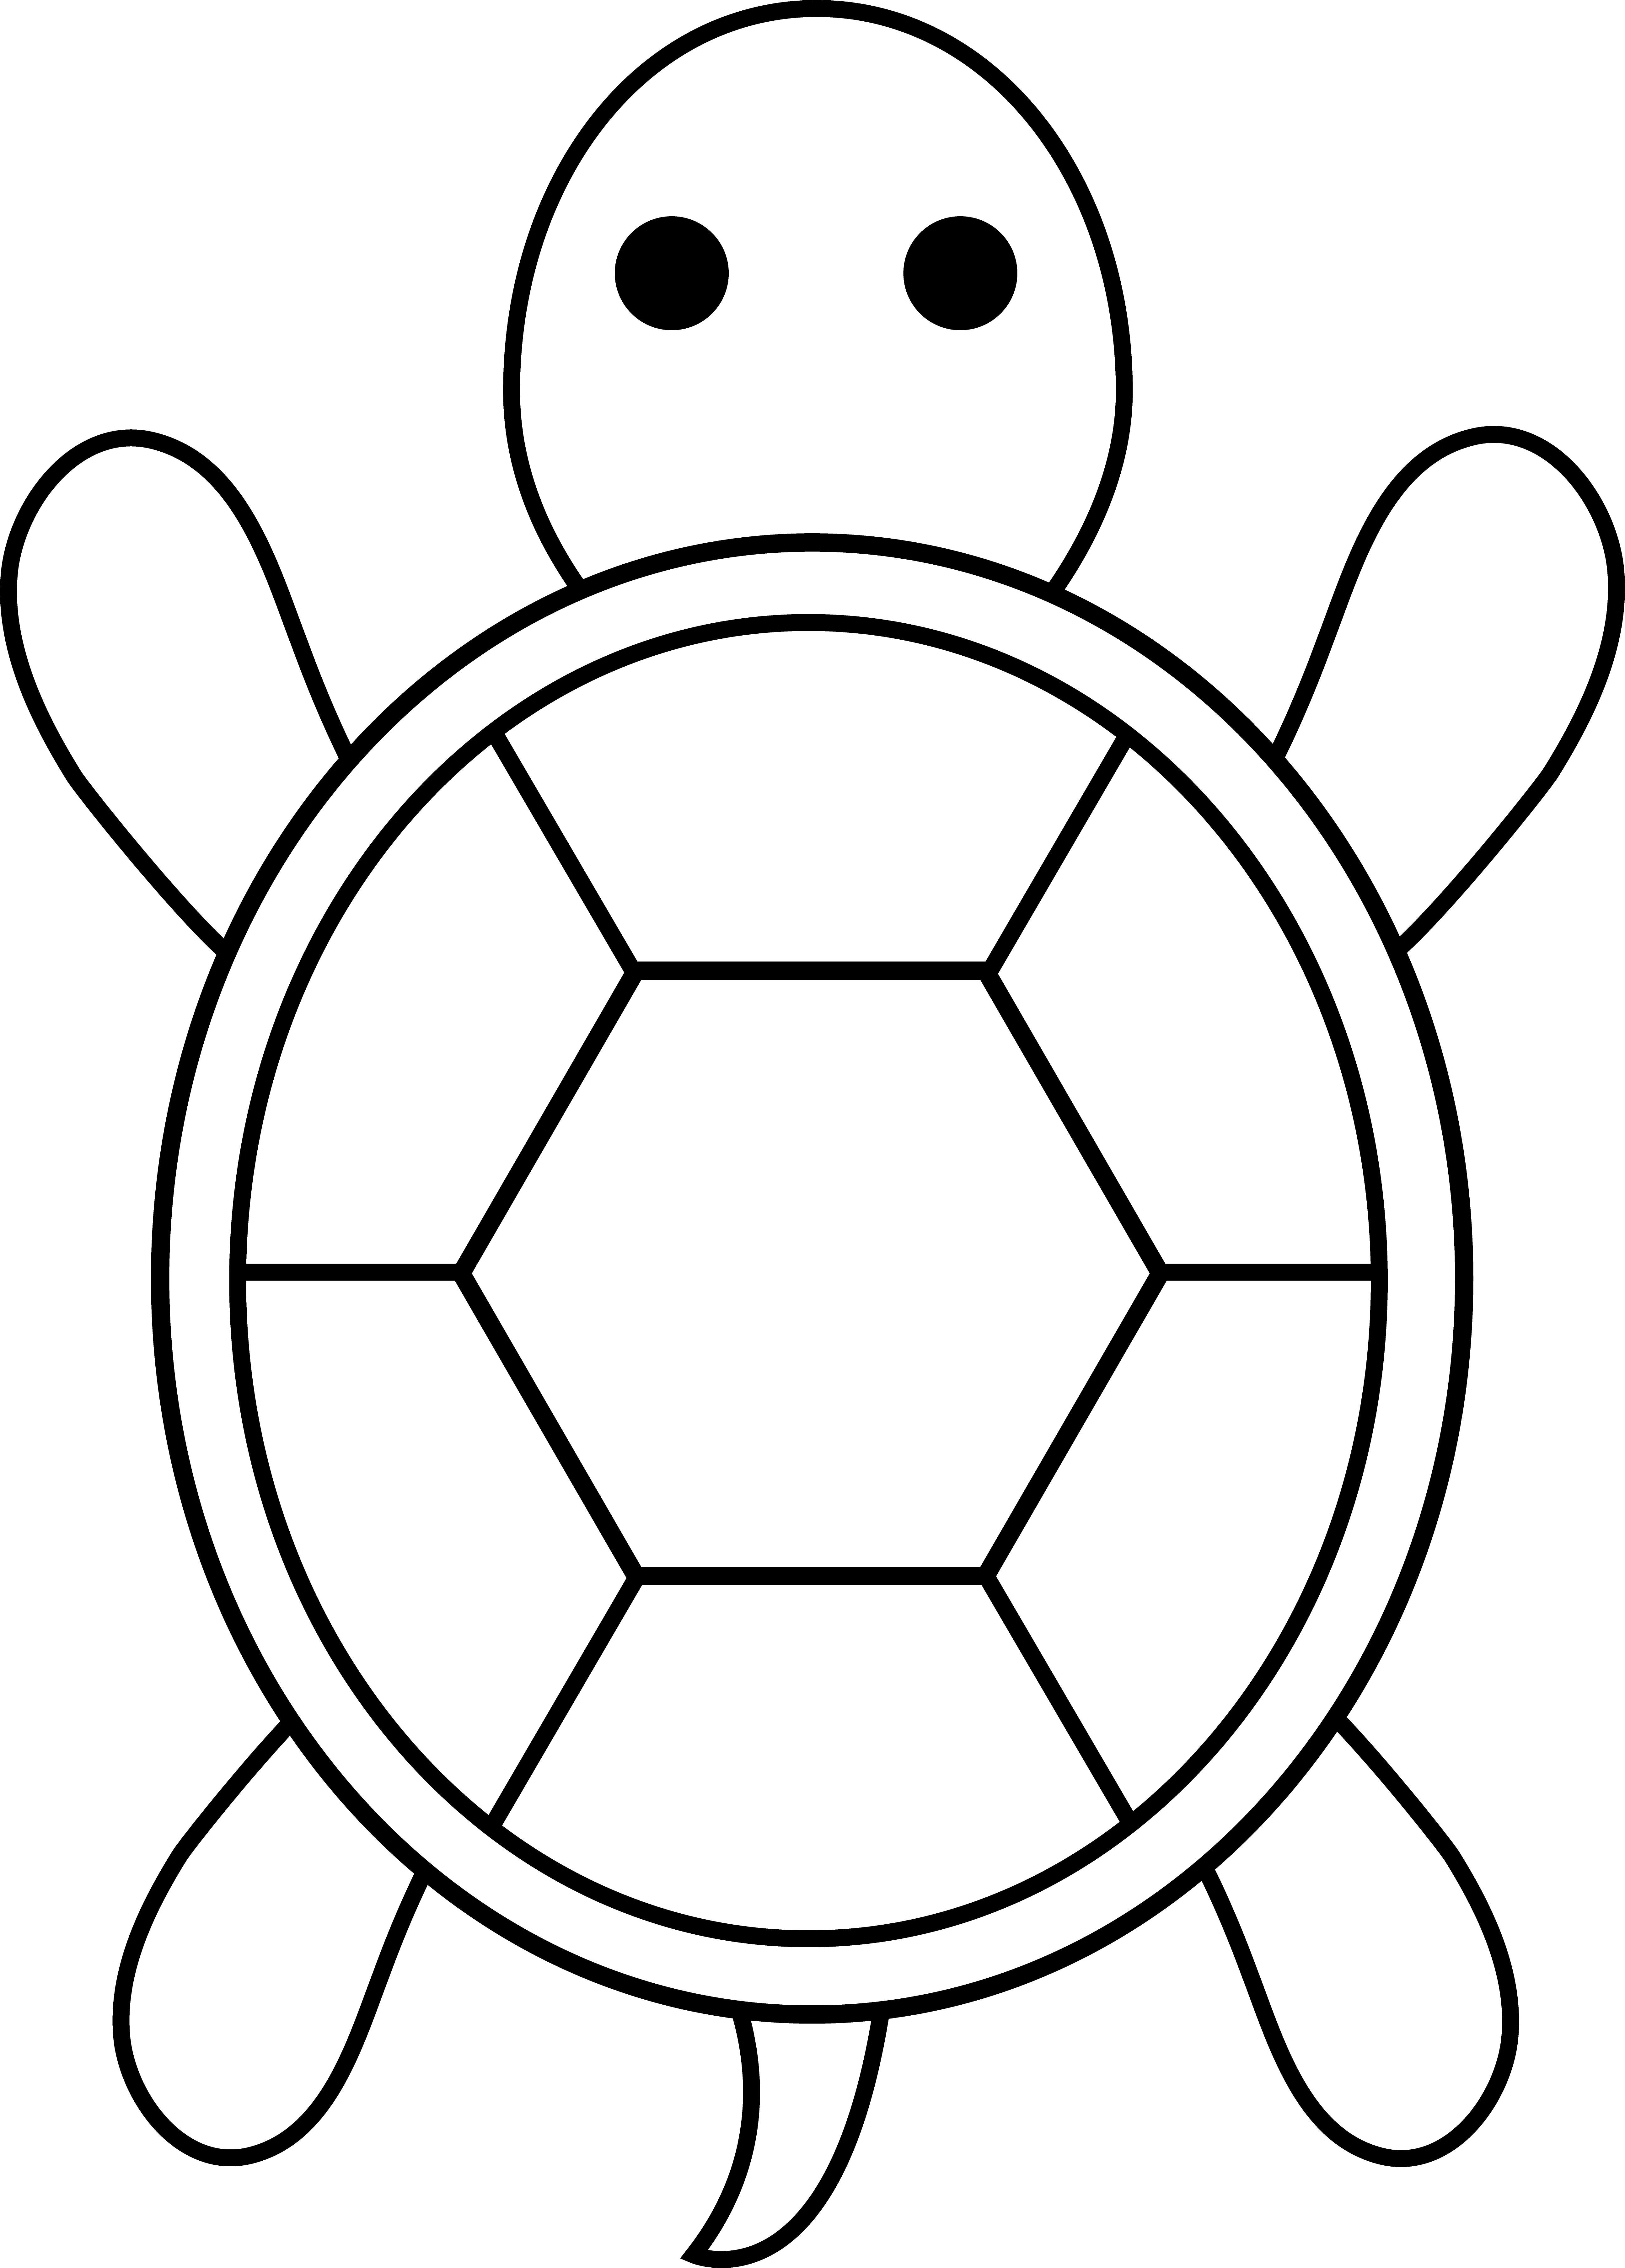 Apple grape turtle clipart clipart images gallery for free.